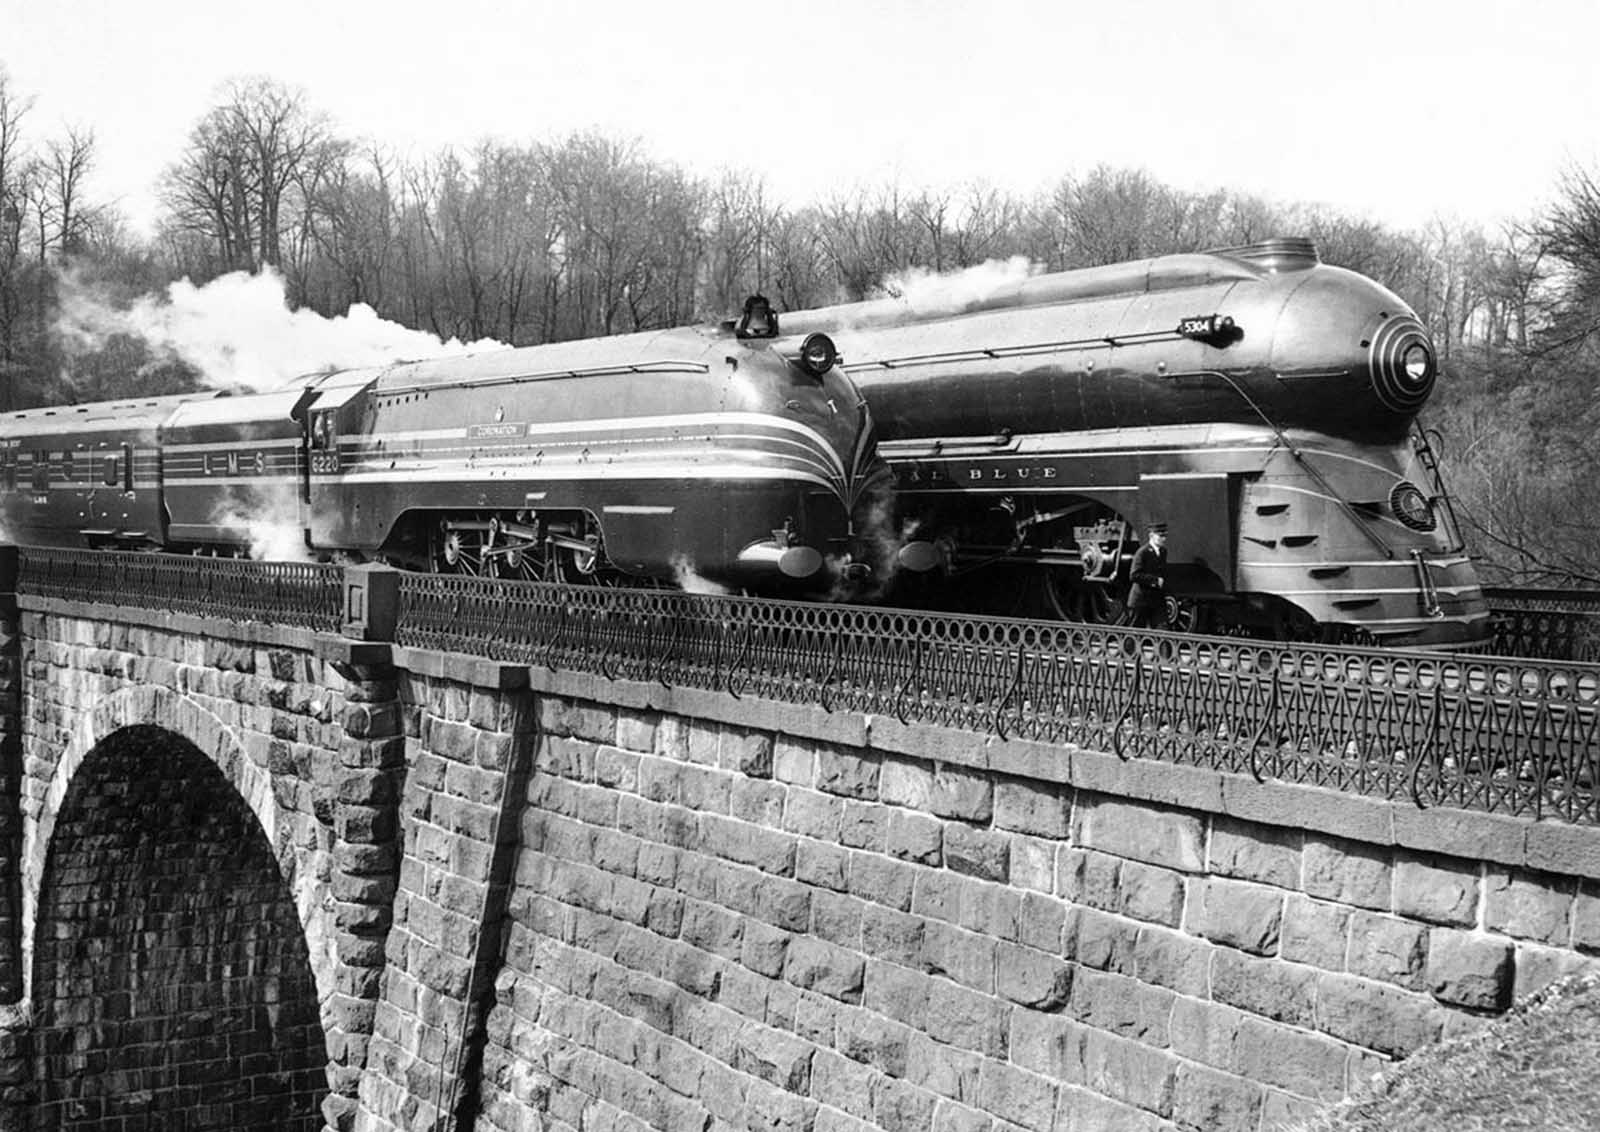 The Coronation Scot, in America for the New York World's Fair, made several runs between Washington and Baltimore, where she awakened considerable interest. The Coronation Scot stops here on a bridge near Washington, alongside the famous American train Royal Blue, on March 27, 1939.